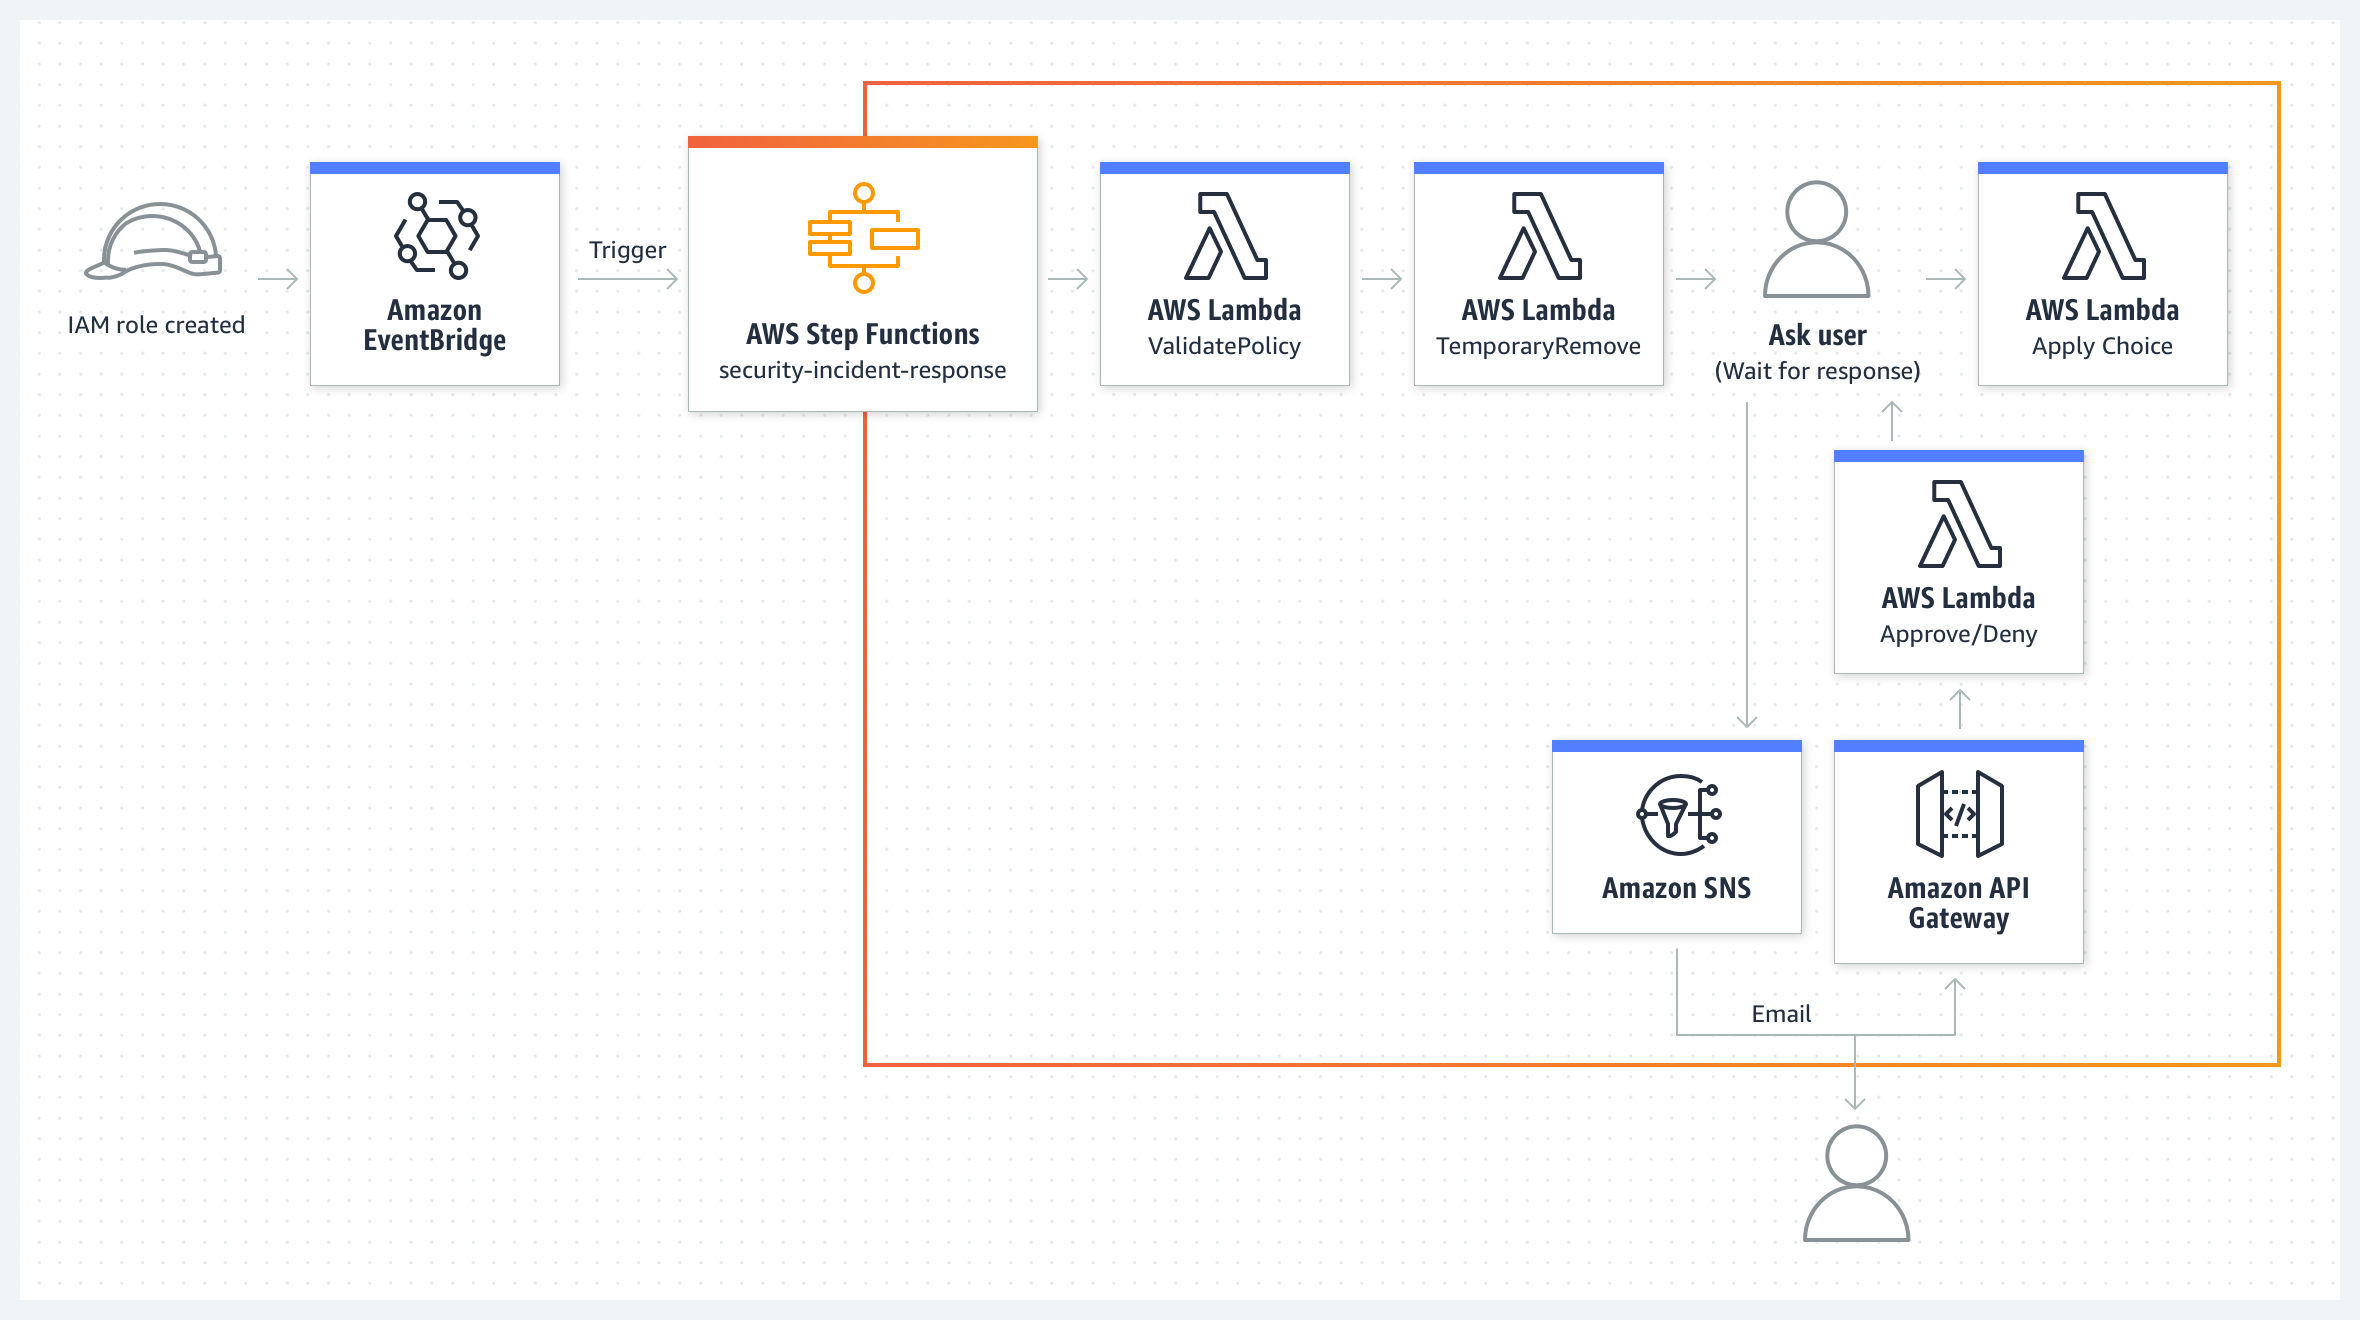 use-case-diagram_AWS-Step-Functions_Security-incident-response@2x